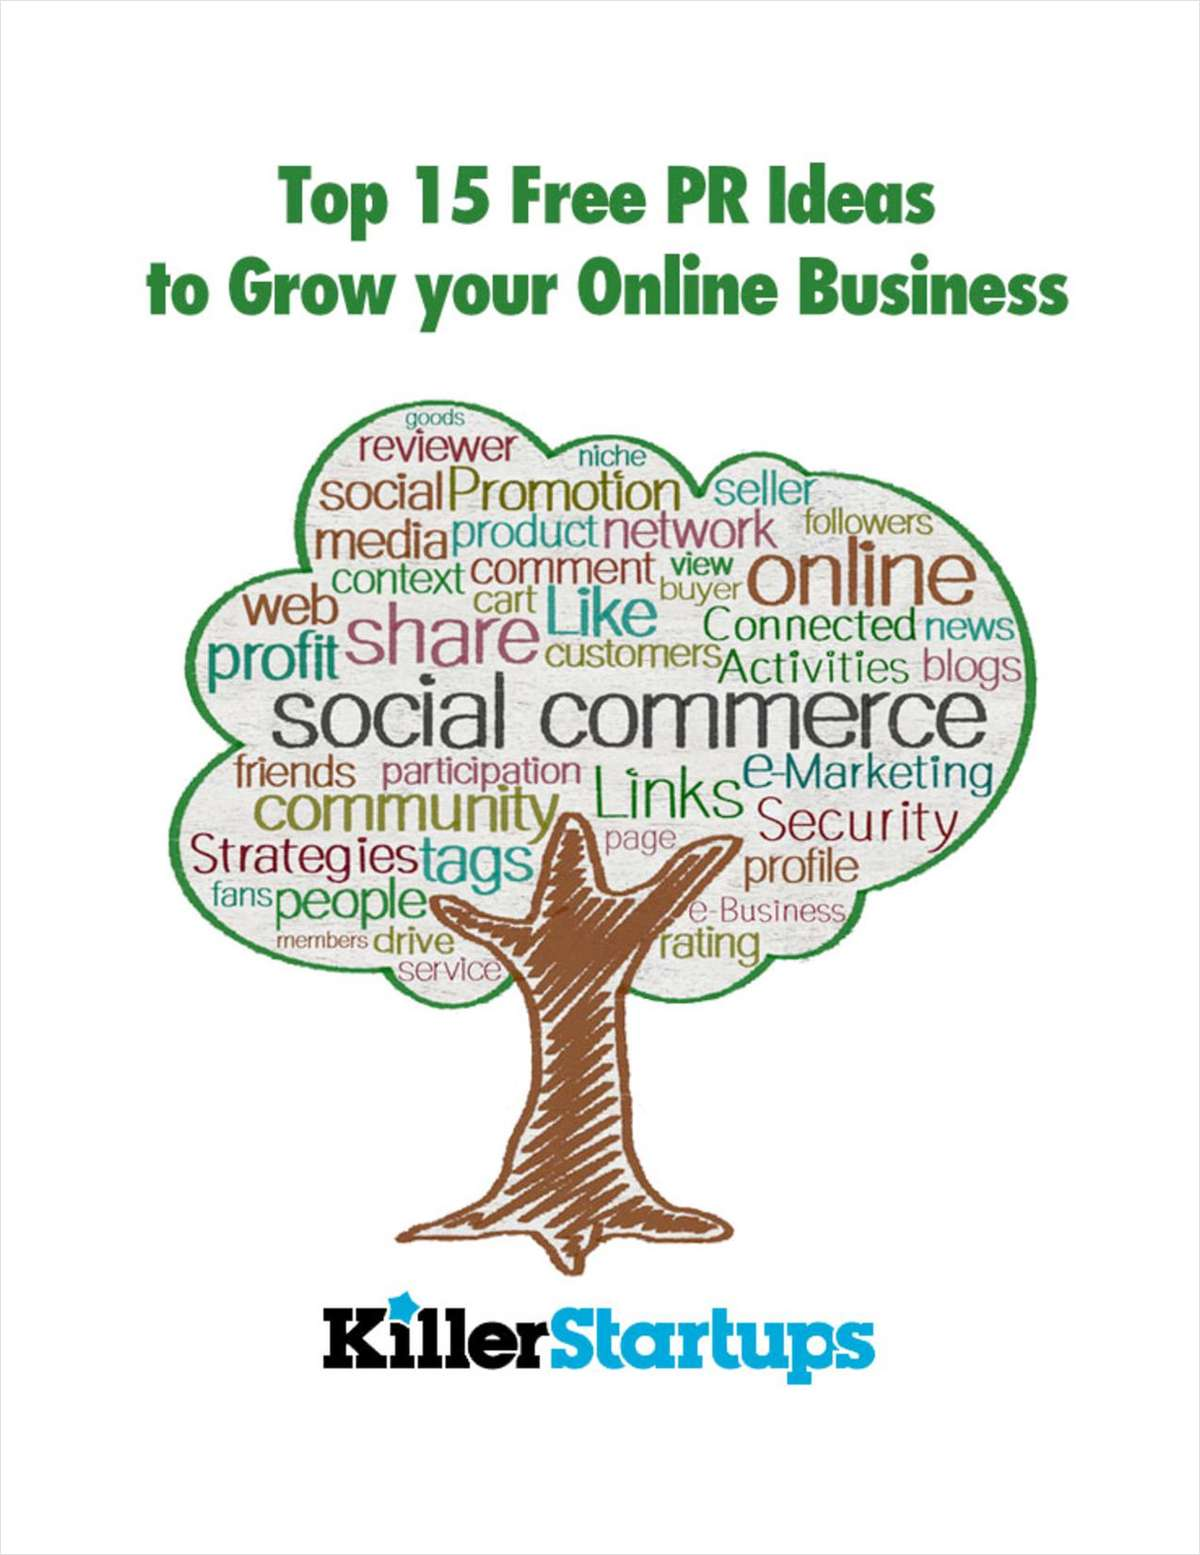 Top 15 Free PR Ideas to Grow Your Online Business